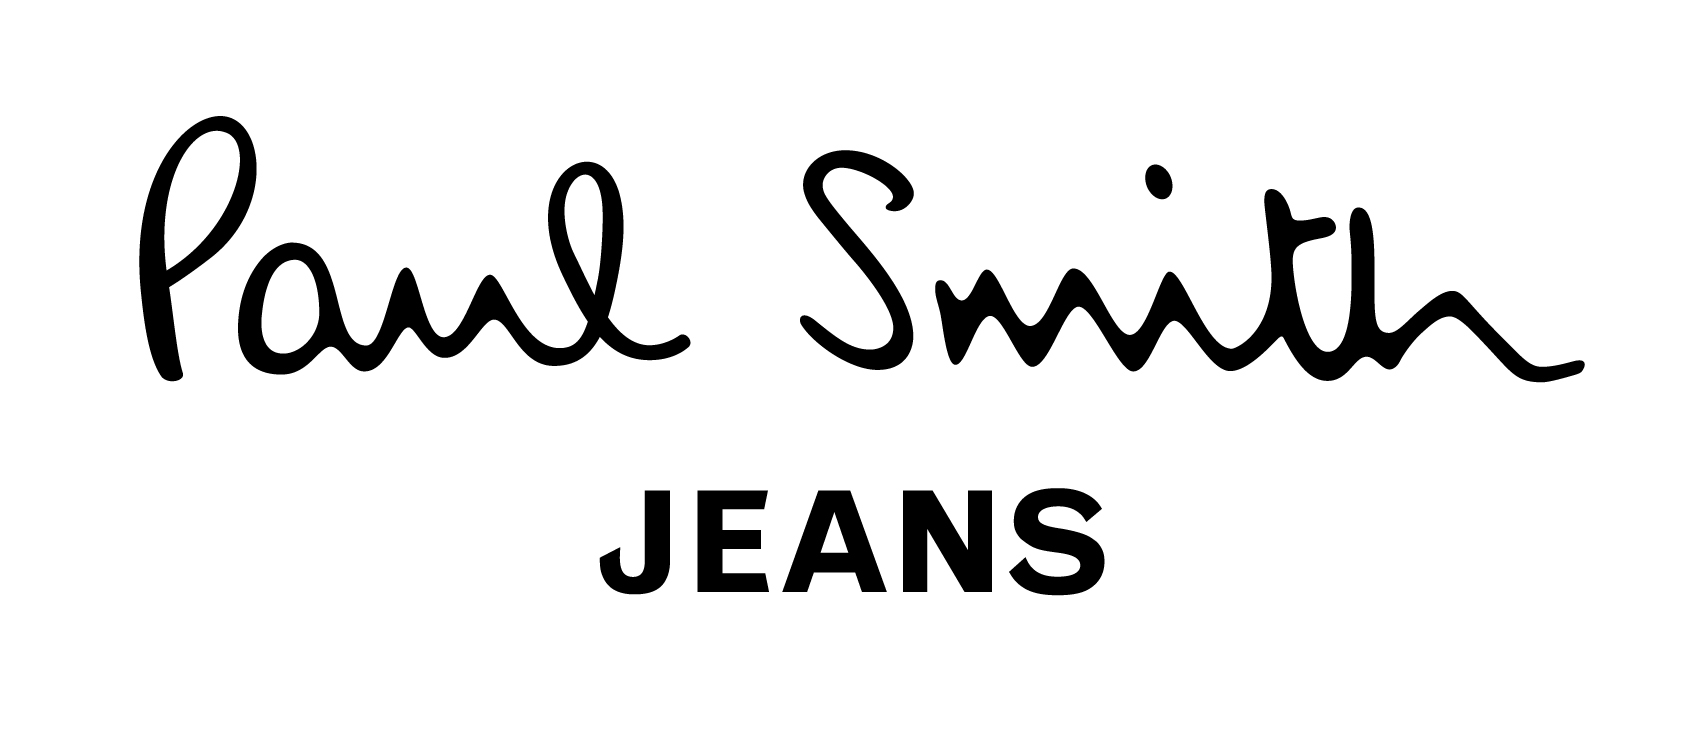 Paul Smith Jeans Company Logo